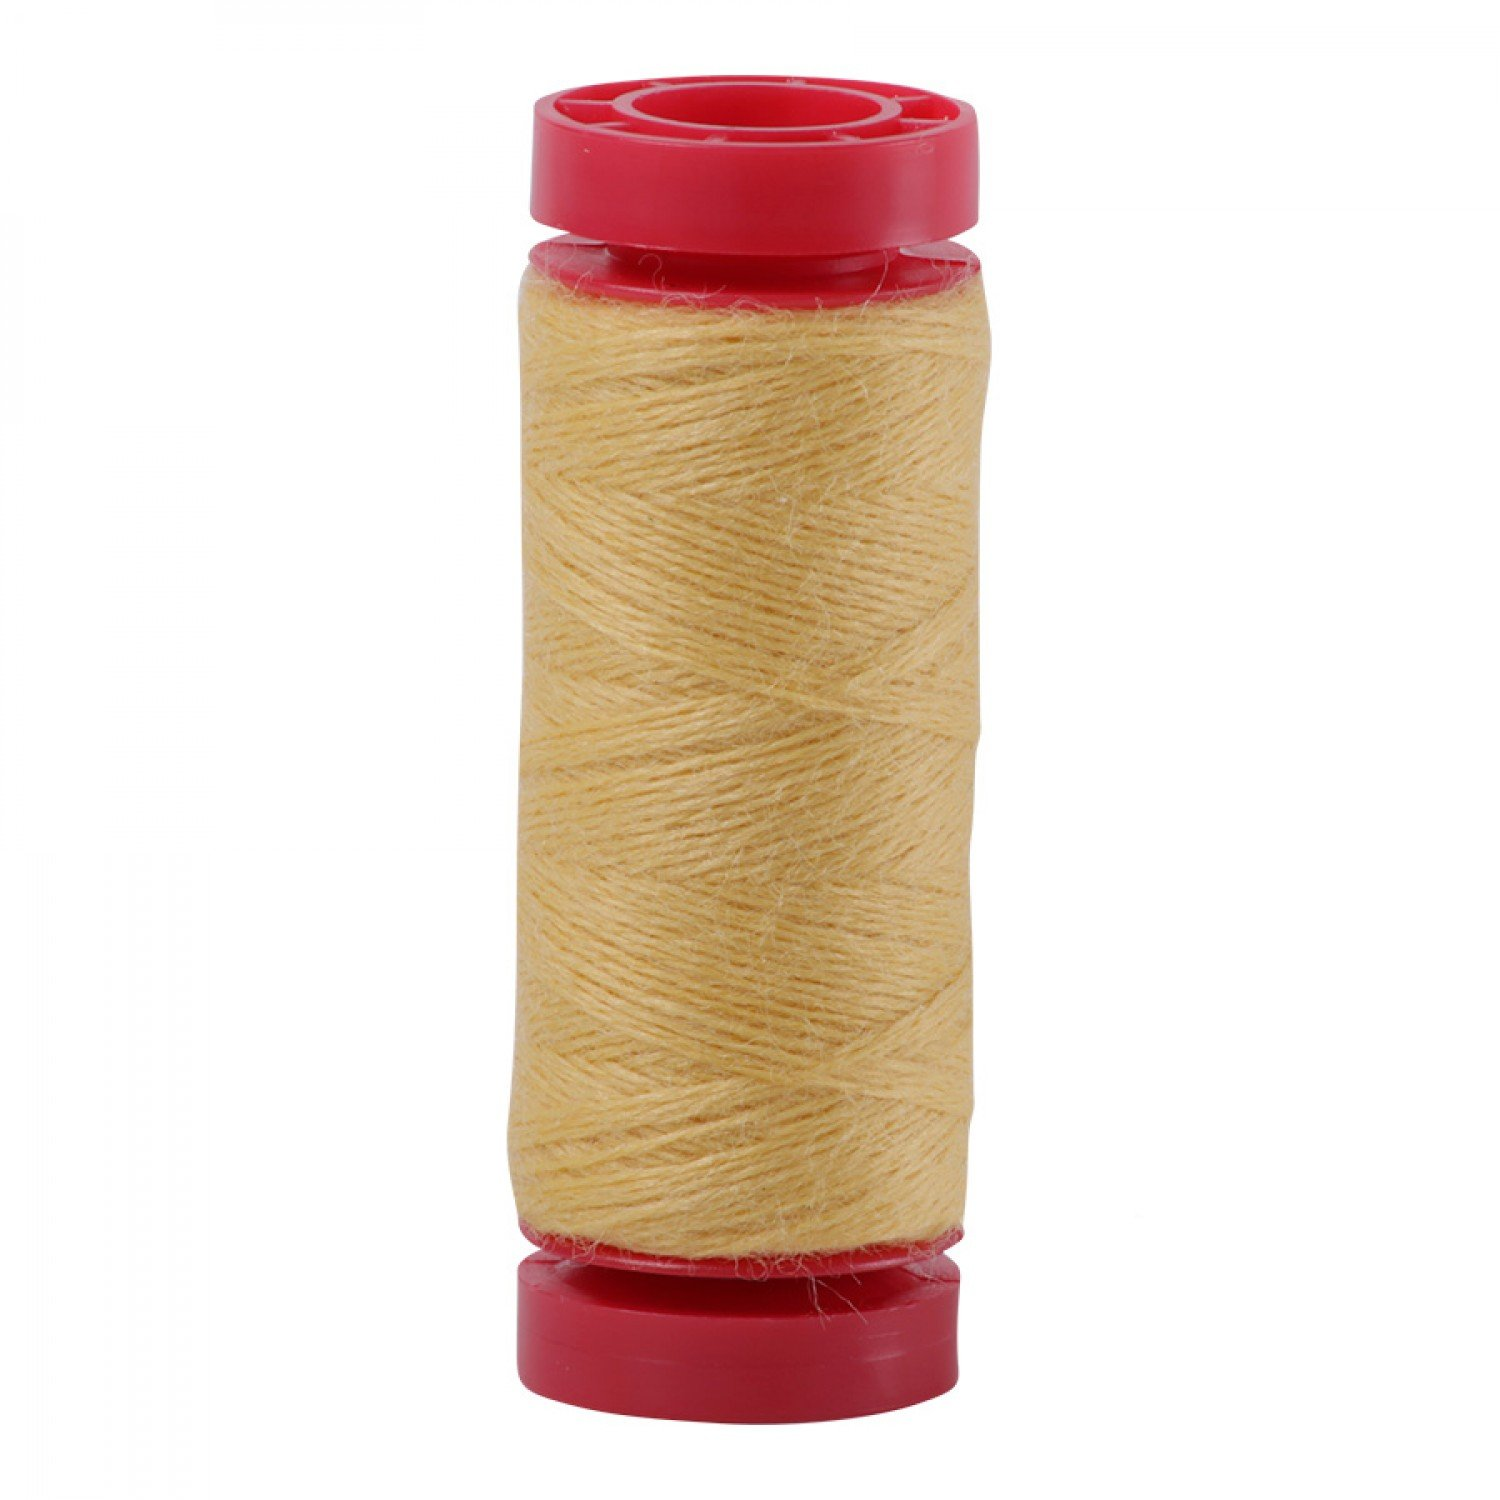 Aurifil 12wt Lana Wool Thread - 8130 Butter